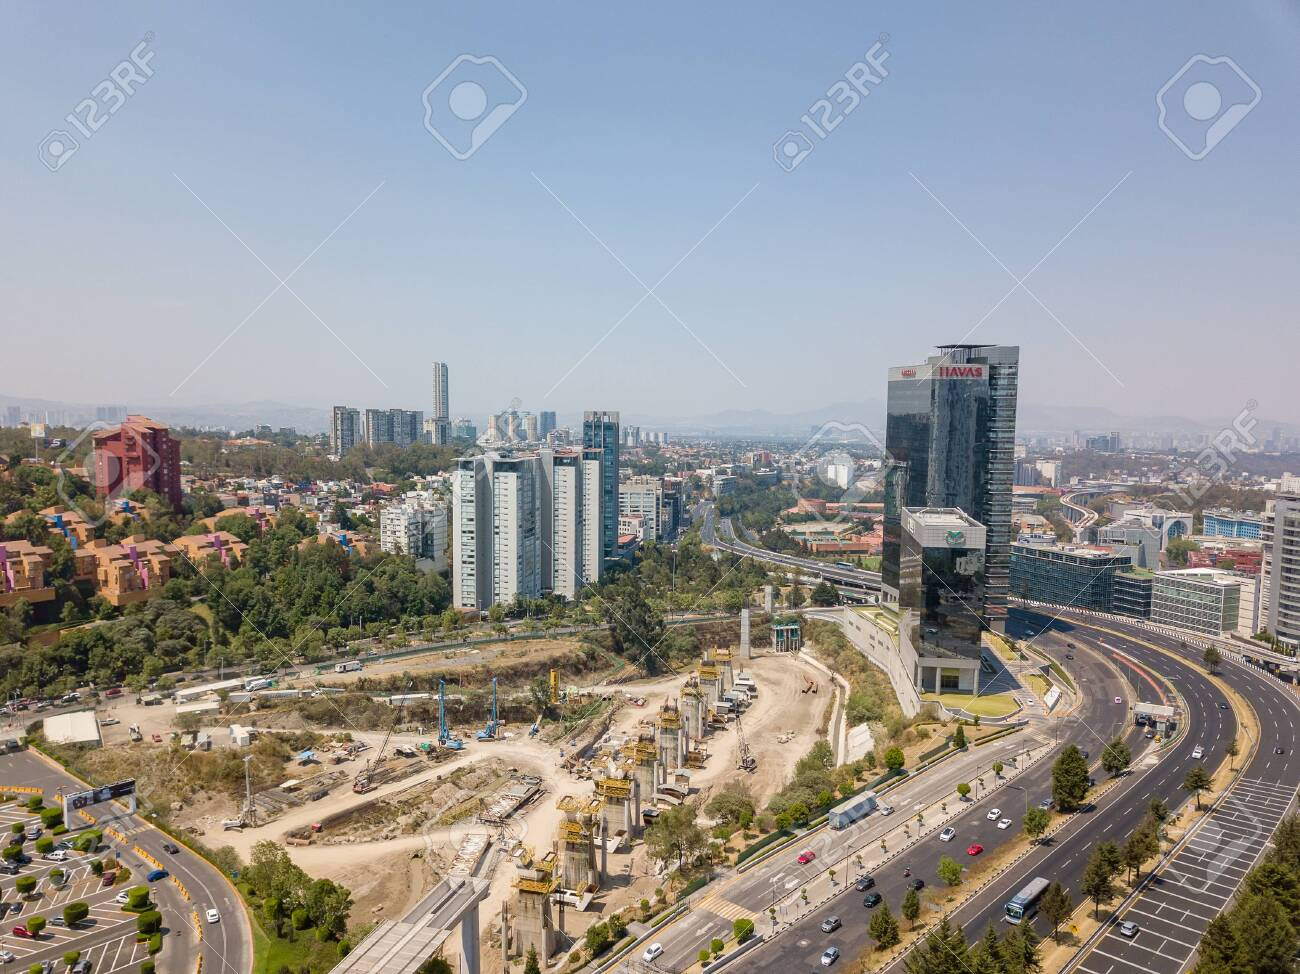 Mexico City Santa Fe Panoramic View Stock Photo Picture And Royalty Free Image Image 137200416